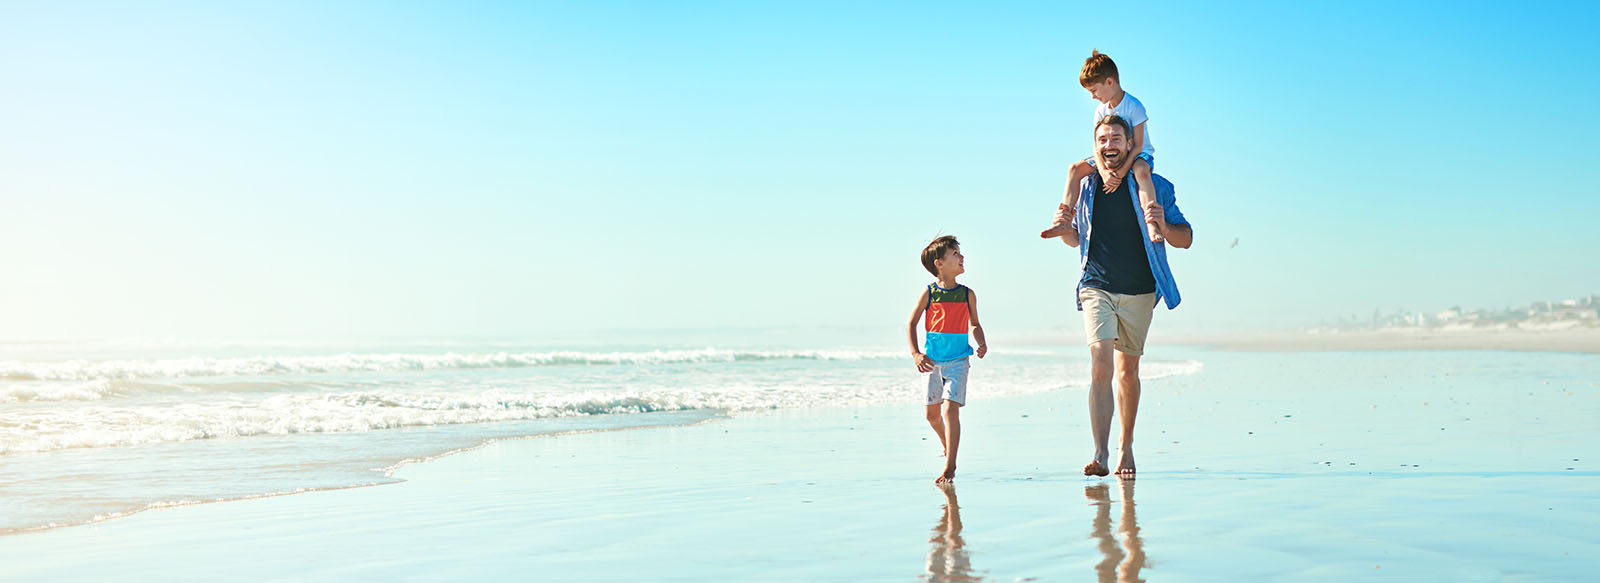 Photo of family walking on beach